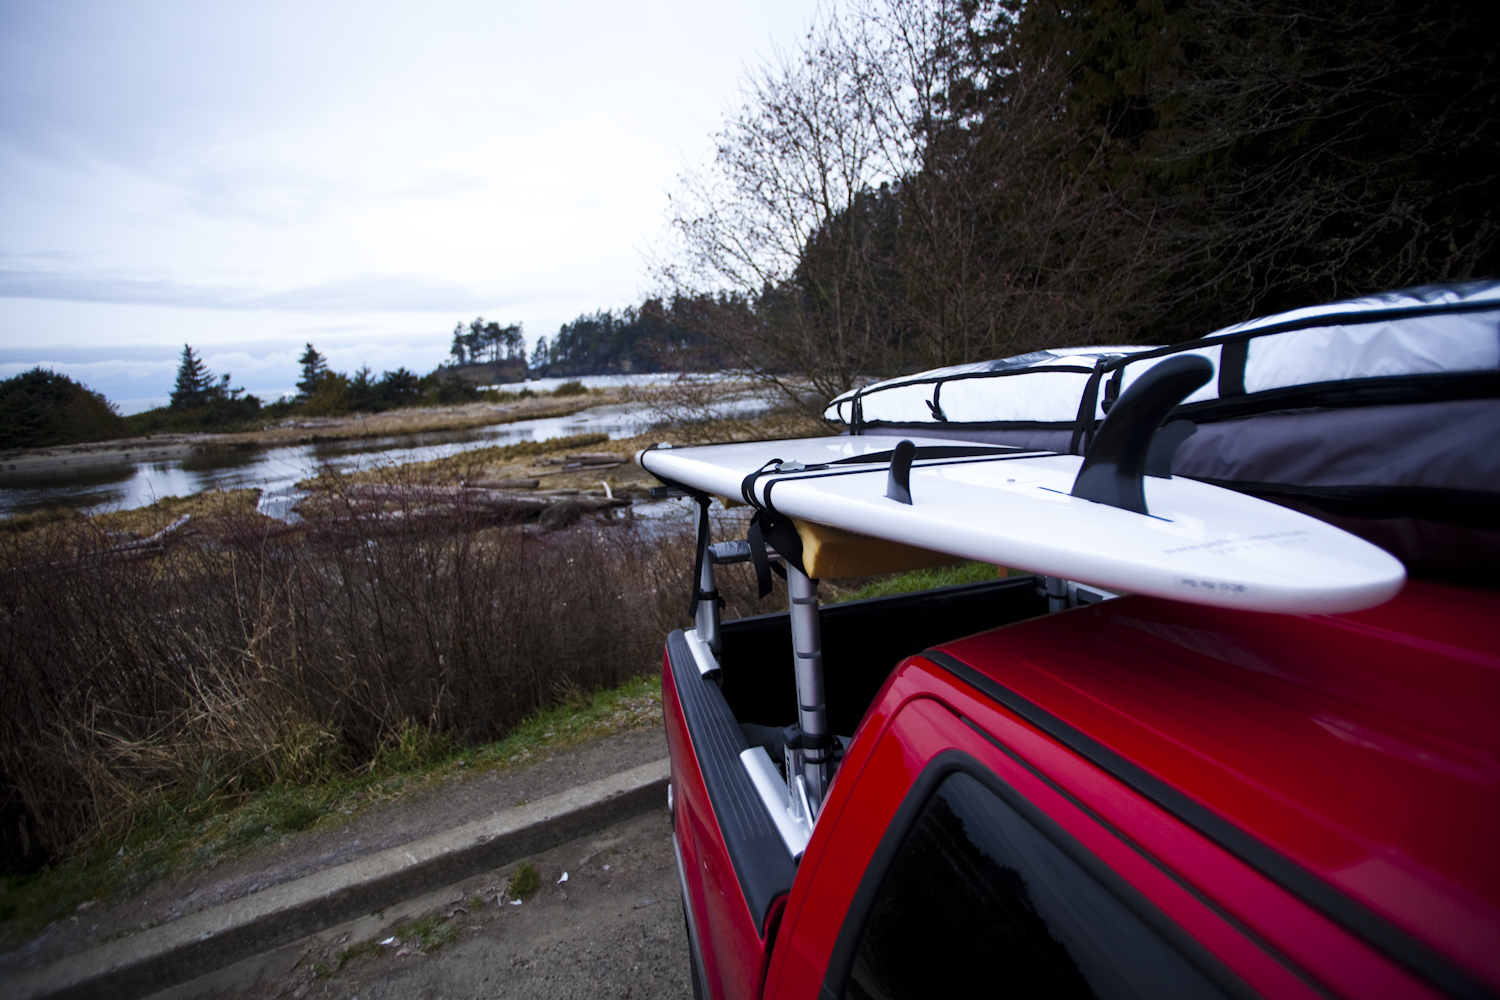 Tom Hanny surfing a stand up paddleboard, Crescent Beach, Salt Creek Recreational Area, Port Angeles, WA USA